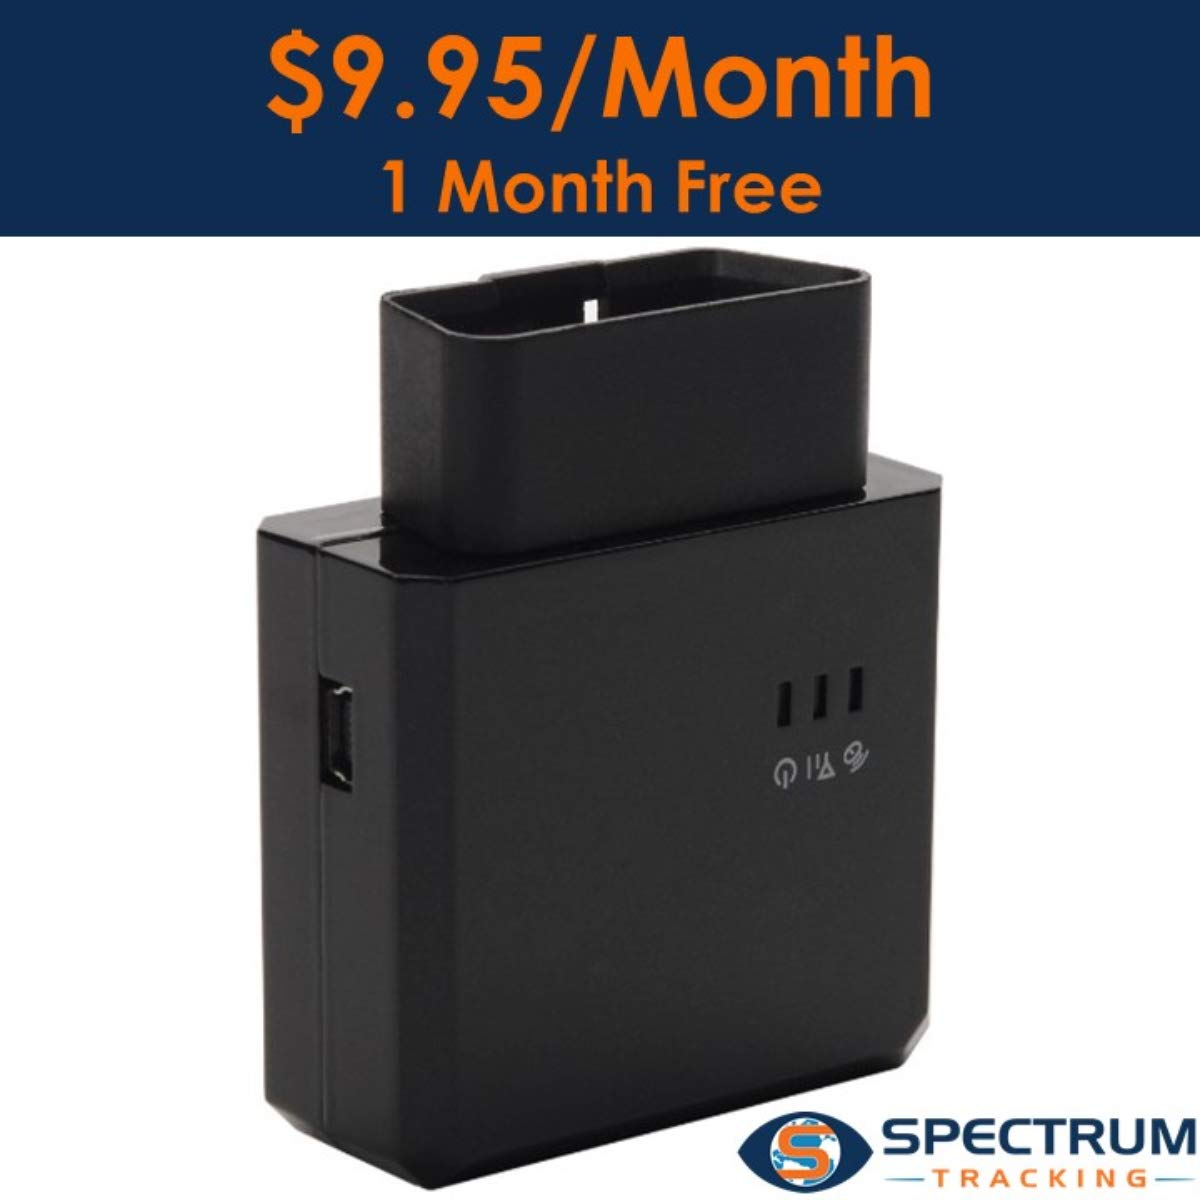 Spectrum Smart:3G OBD II GPS Tracker for Vehicles, Teen Driver Monitoring Device, Fleet Tracking Device, 9.95 Per Month. One Month Free Trial